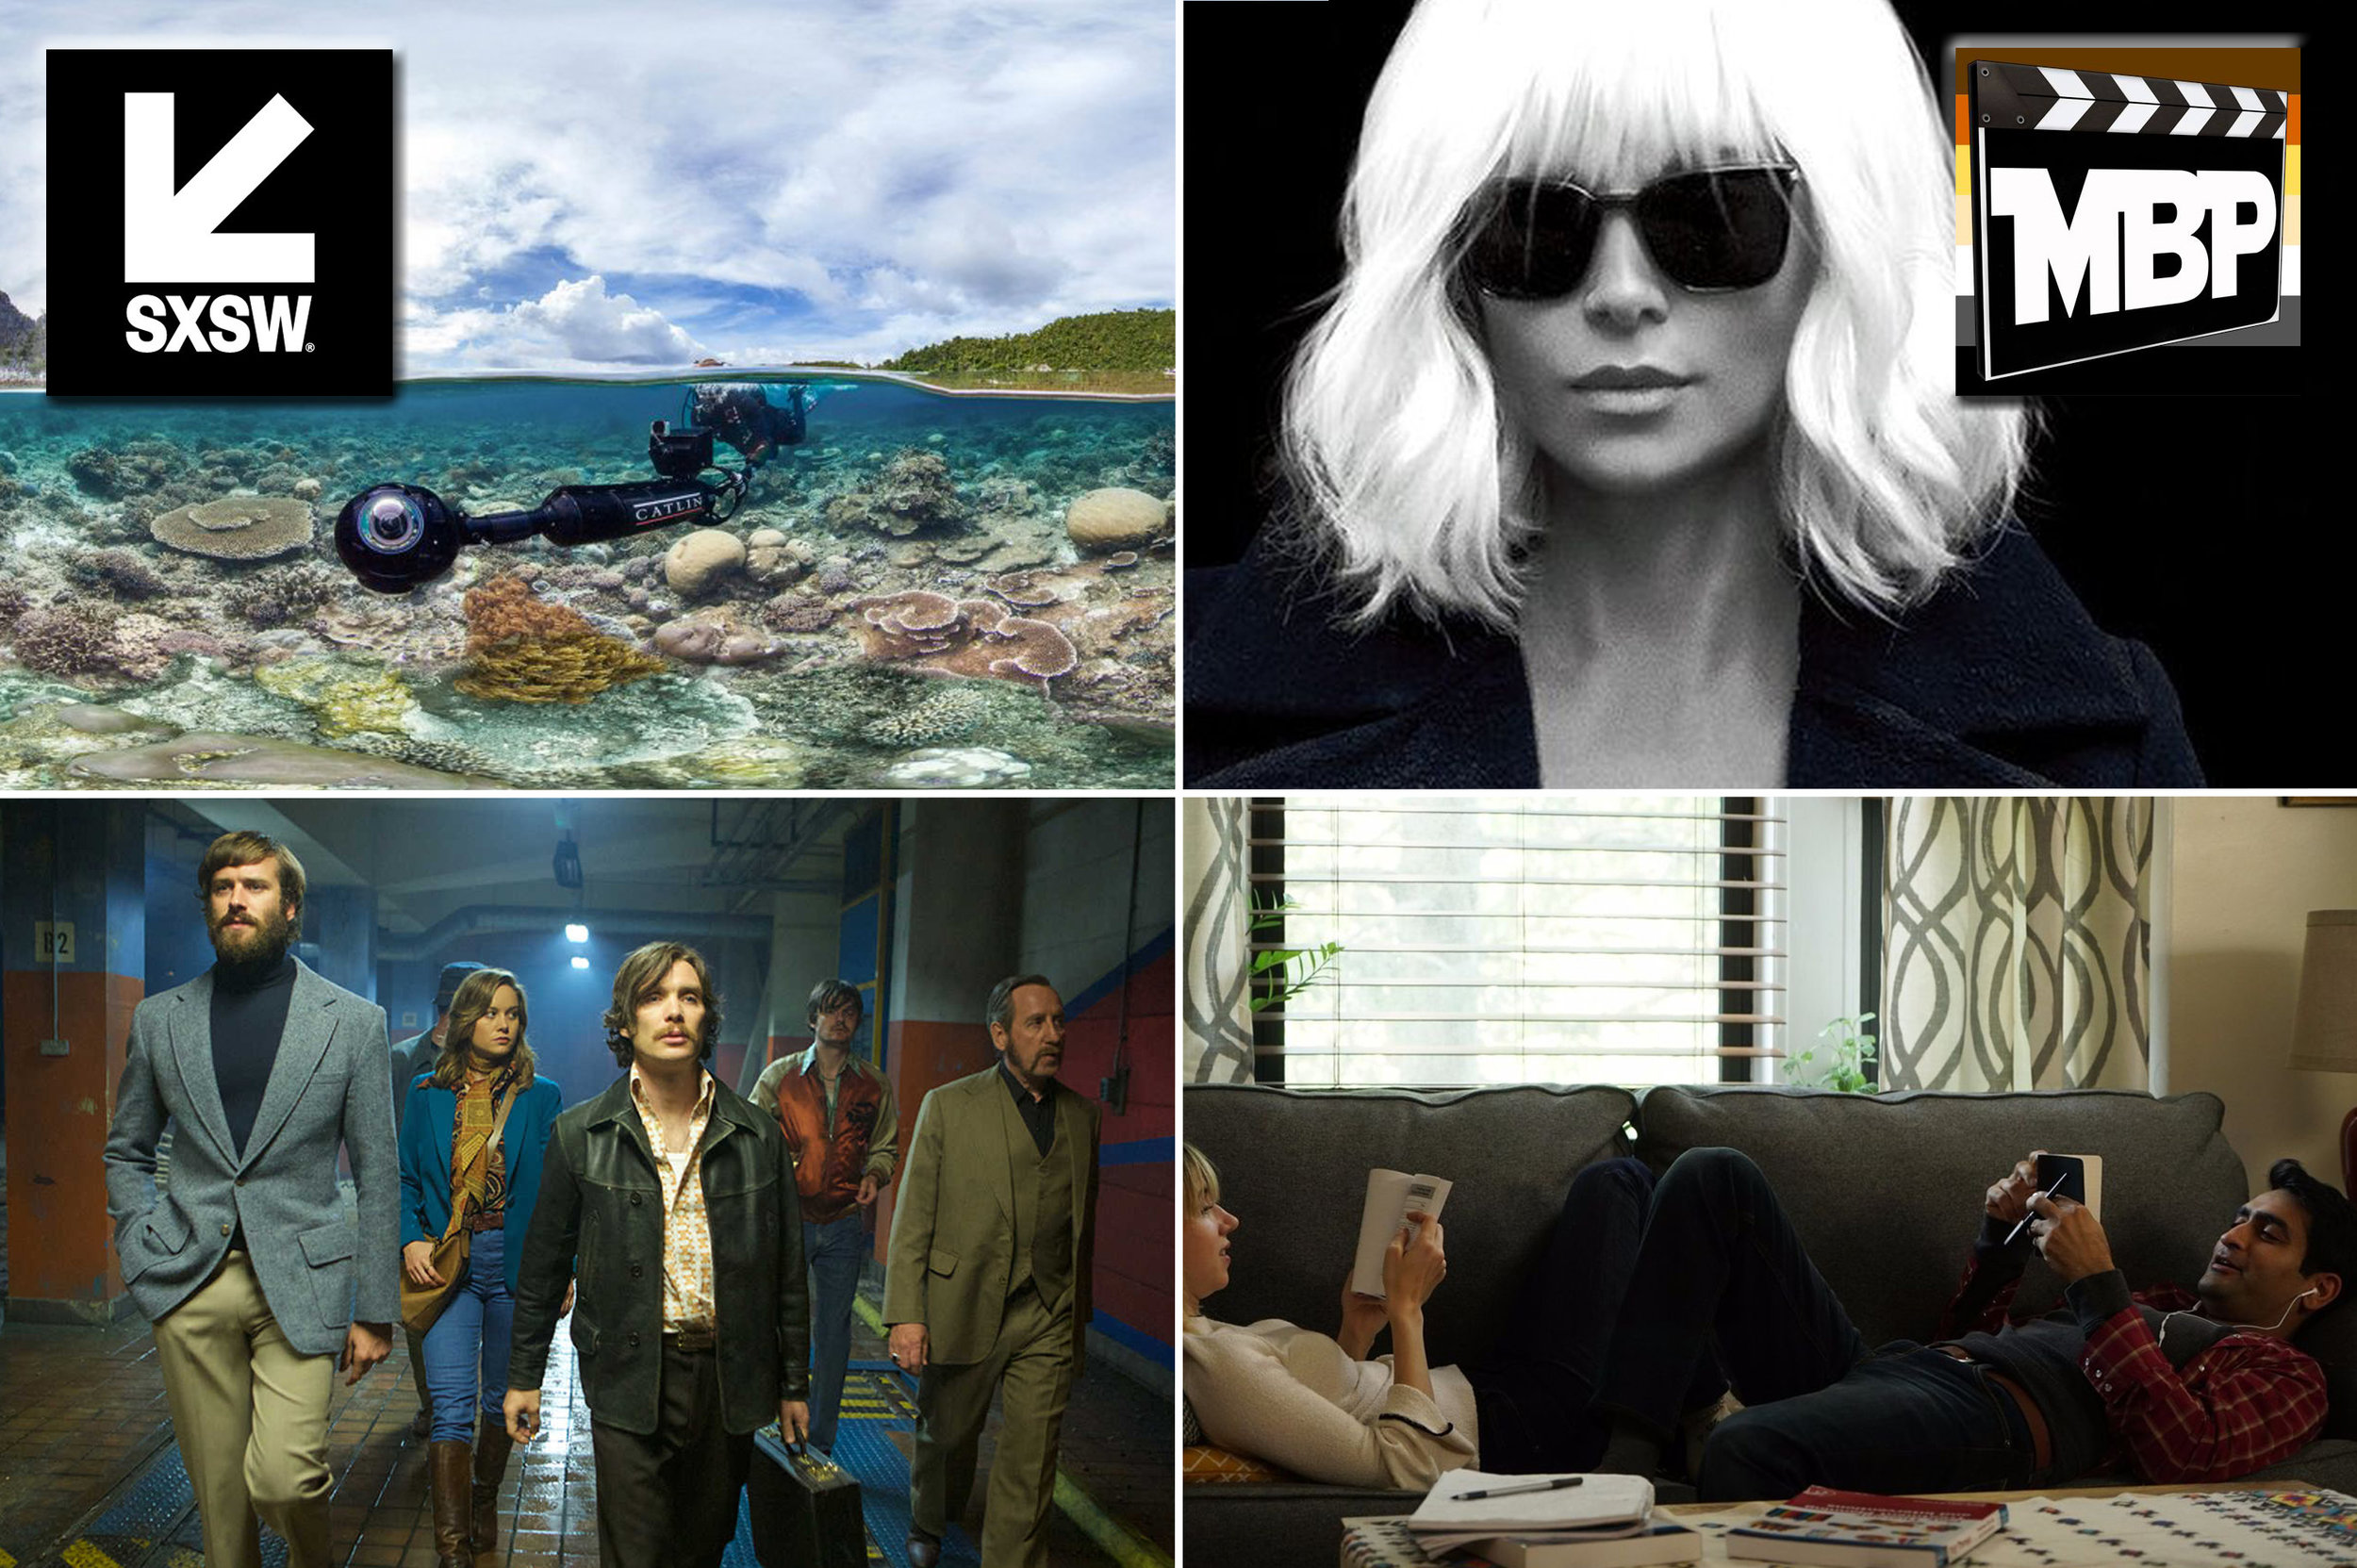 MBP e228 - SXSW 2017 Highlights (Part 2) (4/12/17)    We had a blast at SXSW this year! Join us for our reviews of nine of the films we enjoyed the most from the festival. Click through to listen!